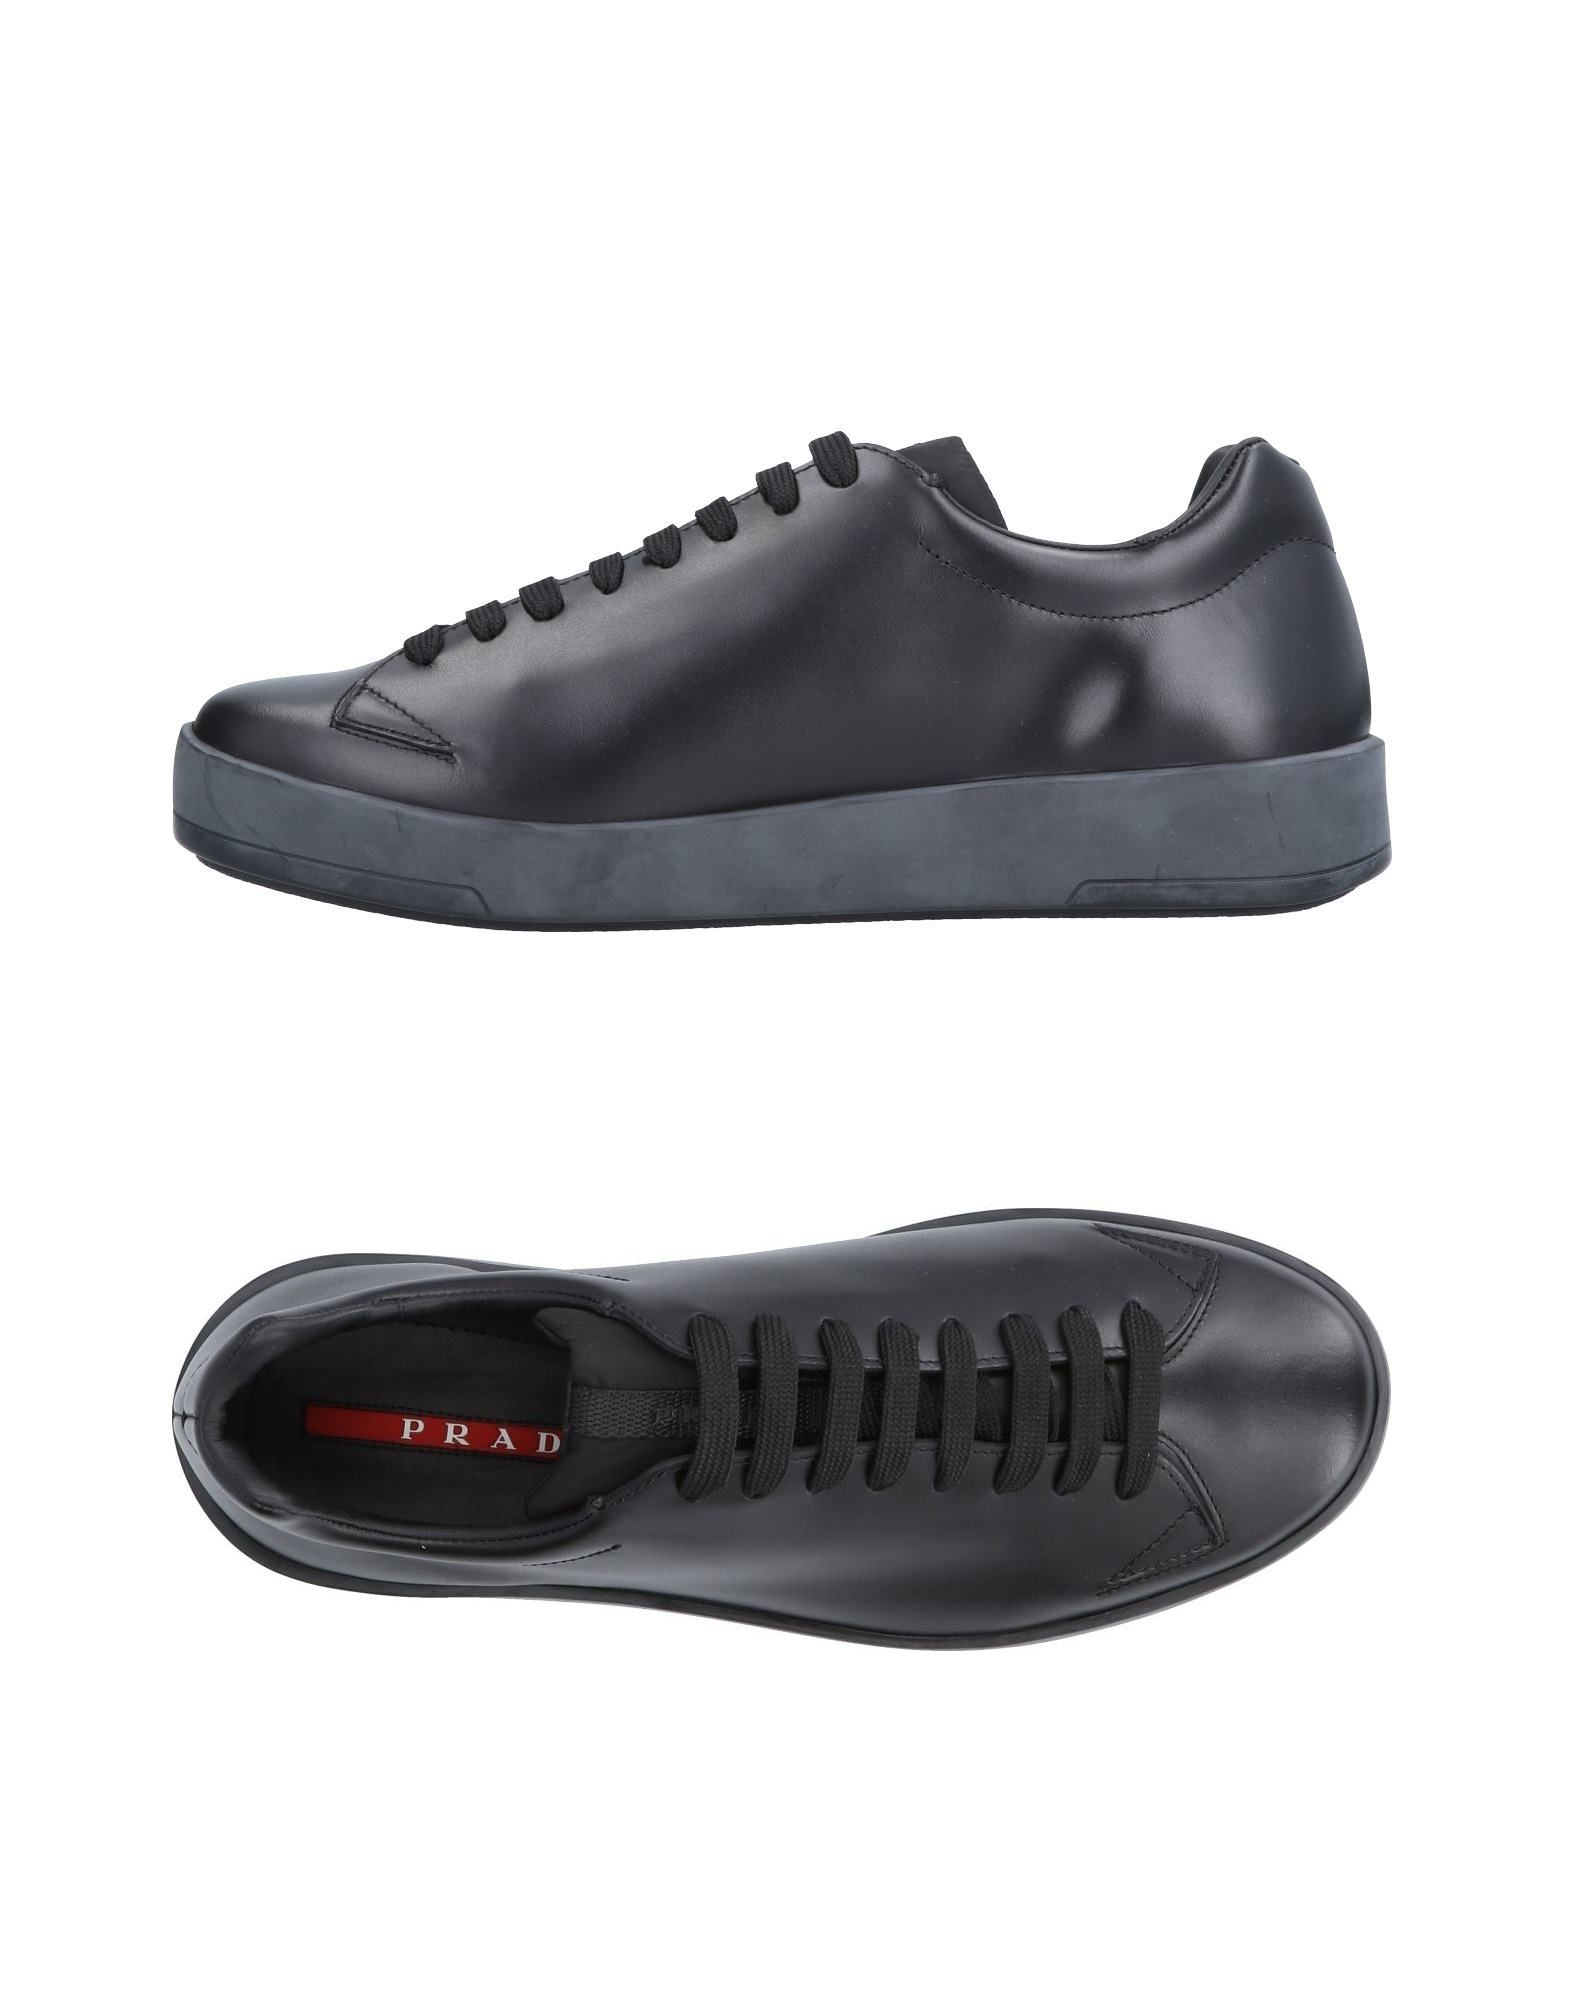 Prada Prada Sport Sneakers - Men Prada Prada Sport Sneakers online on  United Kingdom - 11429871BB 5a782e